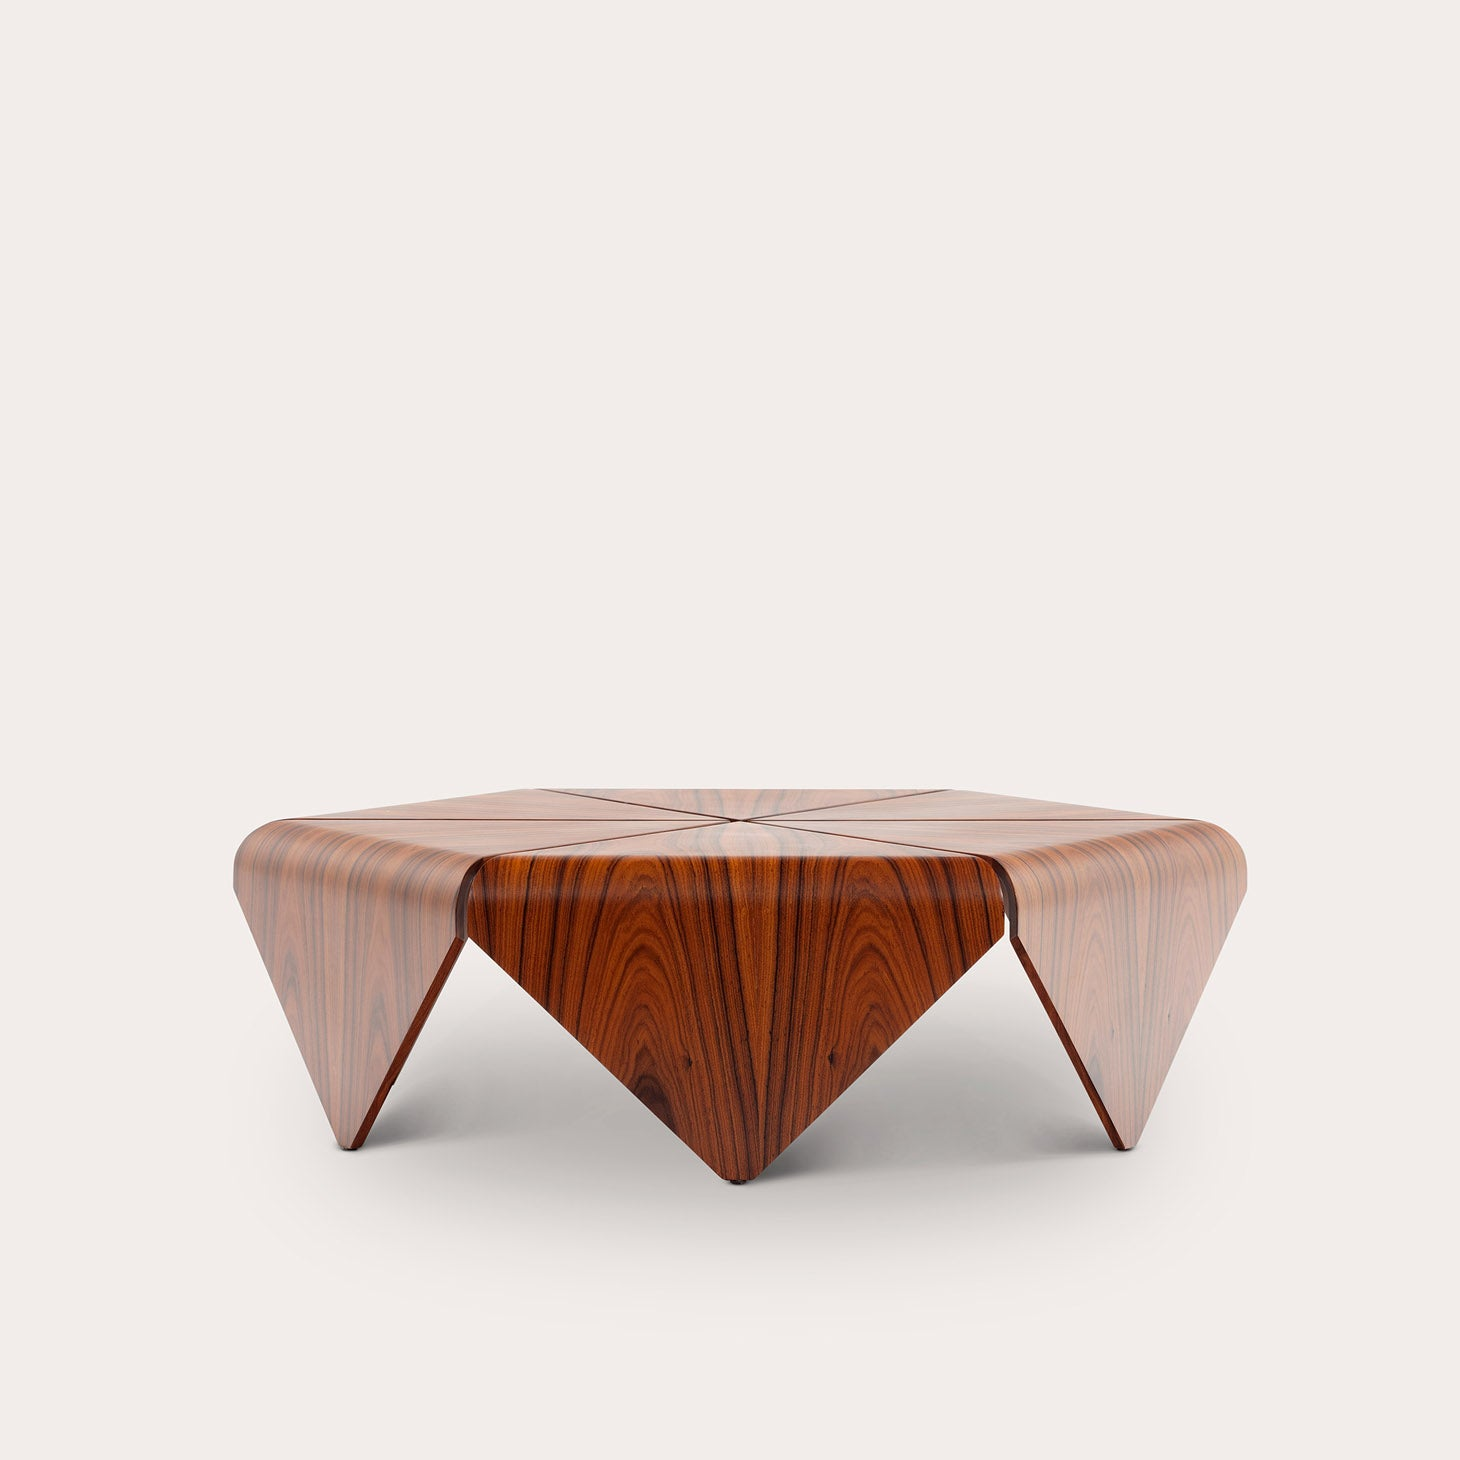 Petalas Tables Jorge Zalszupin Designer Furniture Sku: 003-230-10126